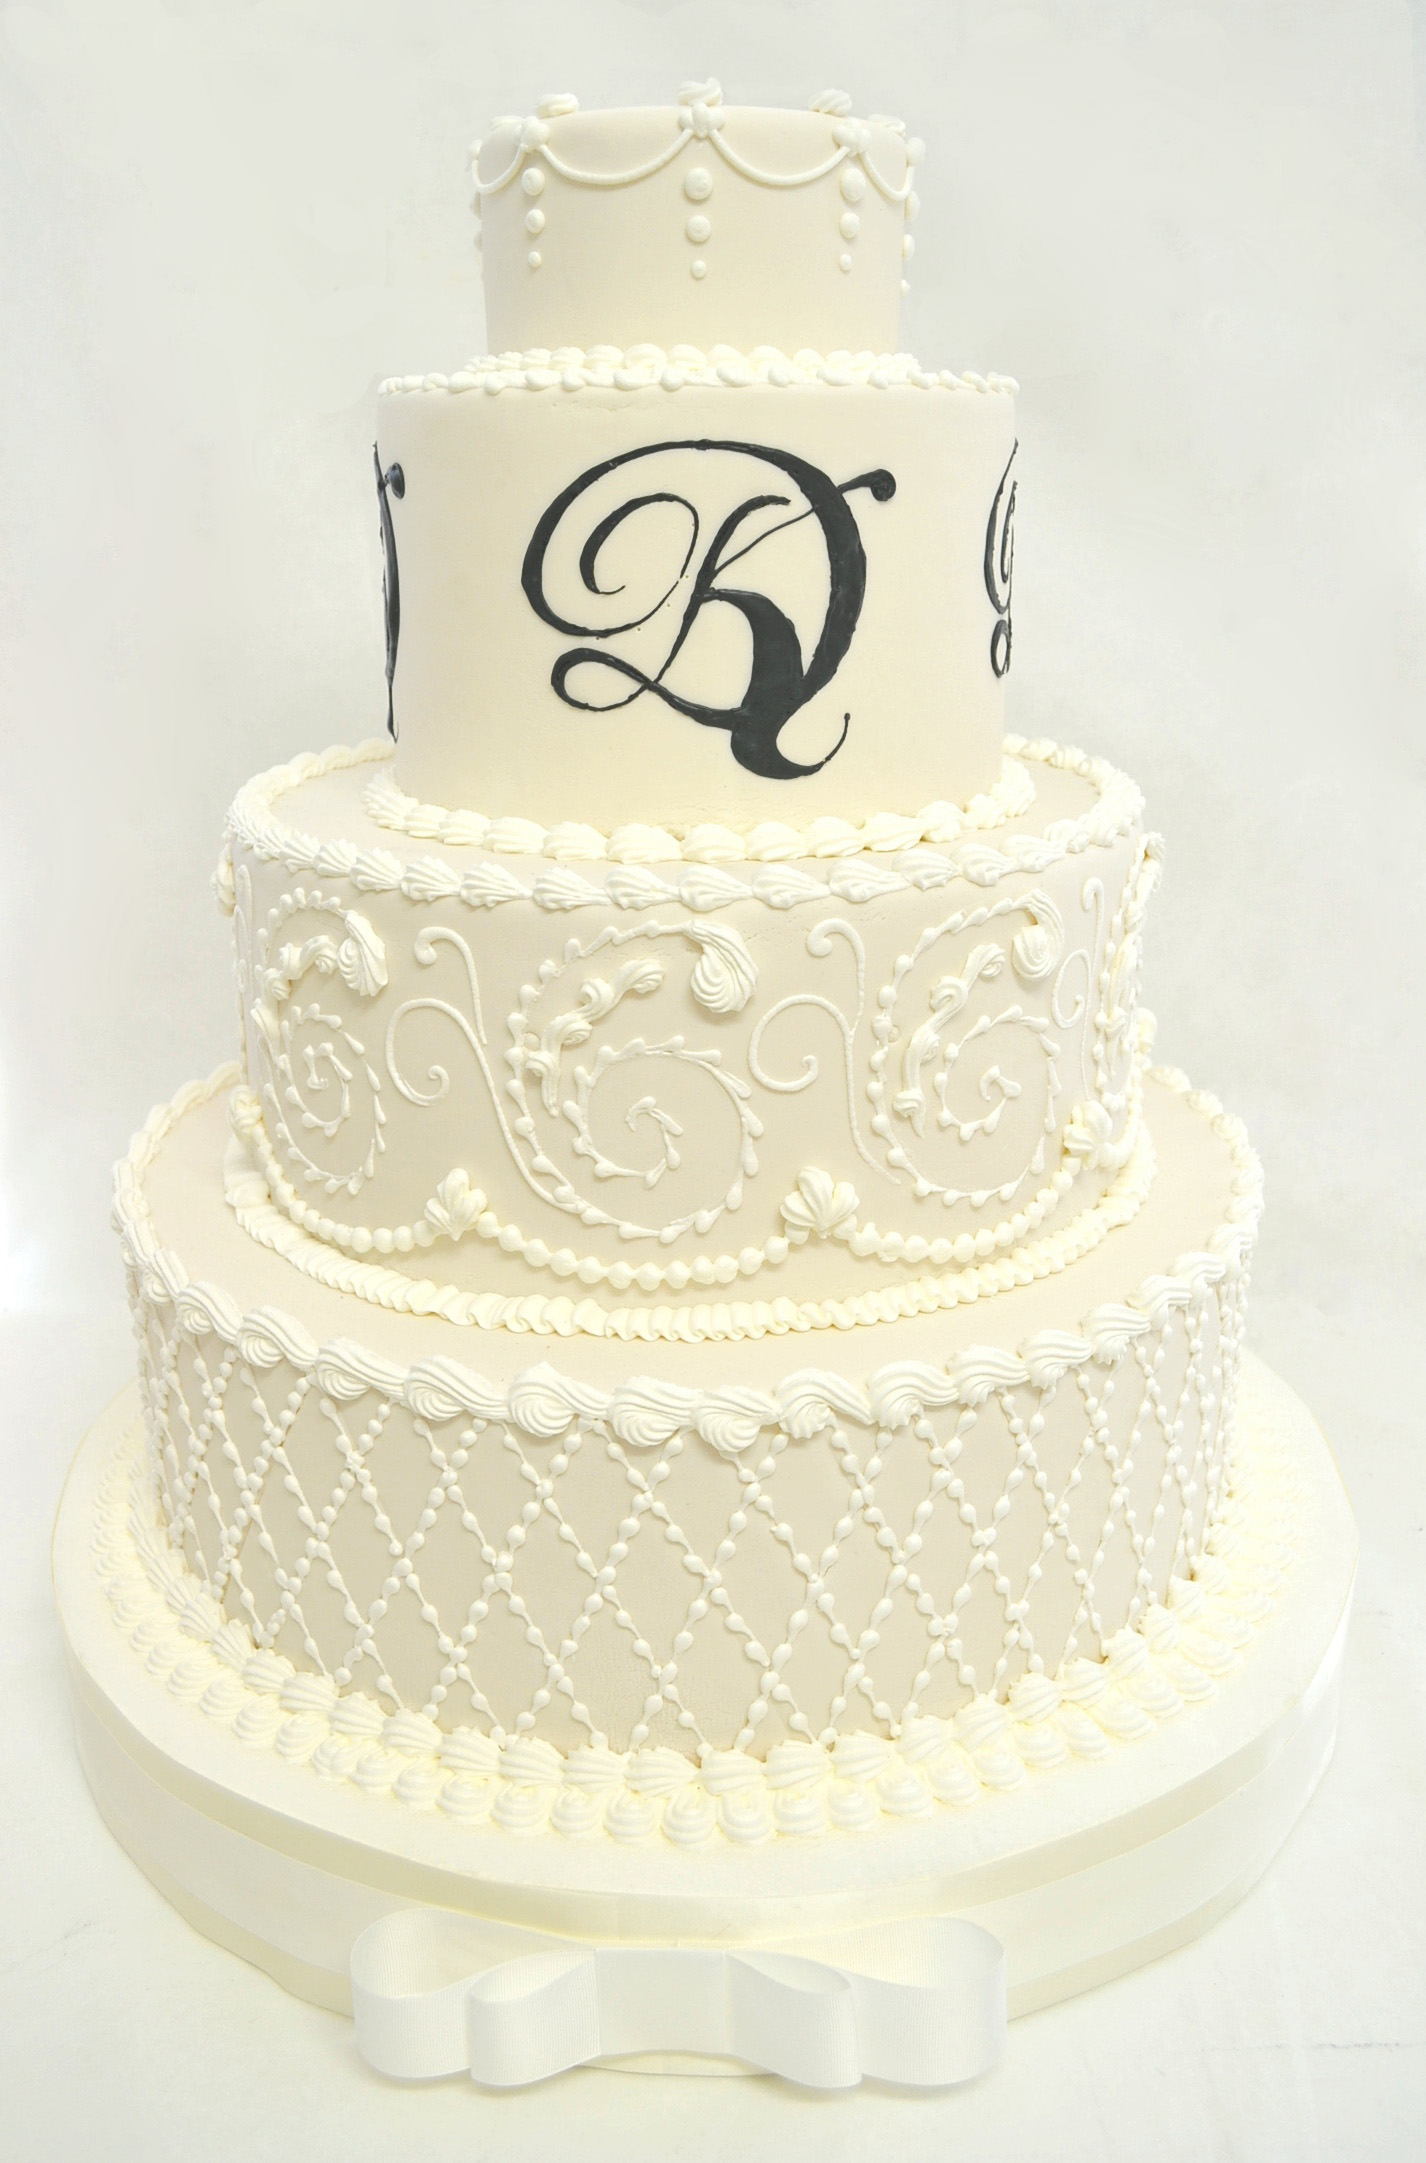 HEAVY PIPING AND MONOGRAMM WEDDING CAKE